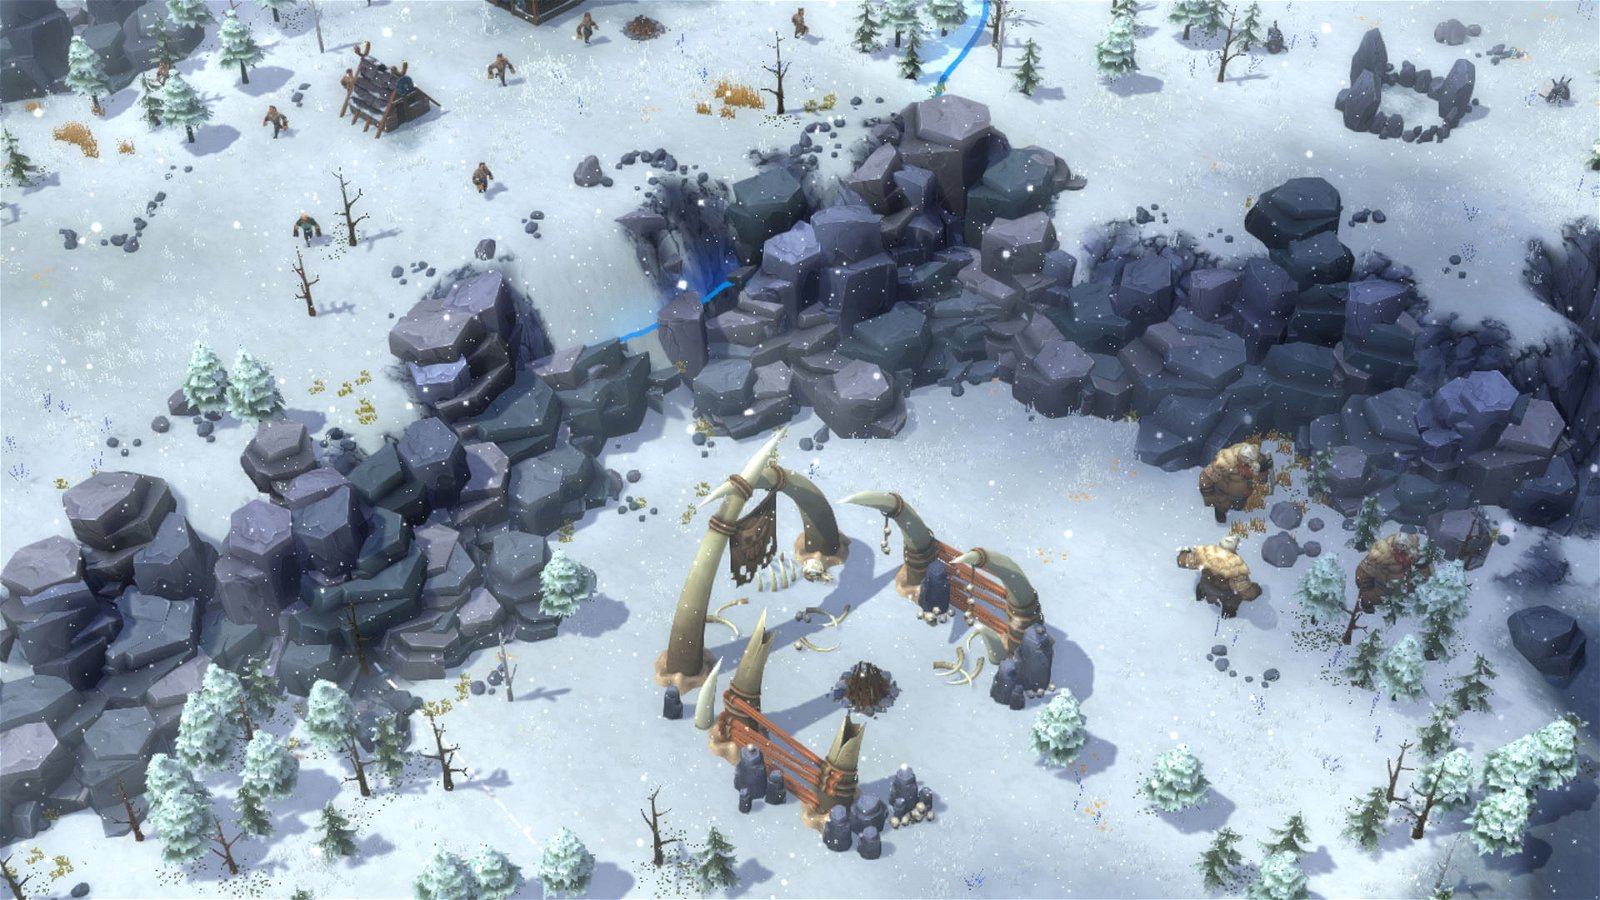 Northgard Early Access Preview - A Beautiful Strategy Title | CGMagazine